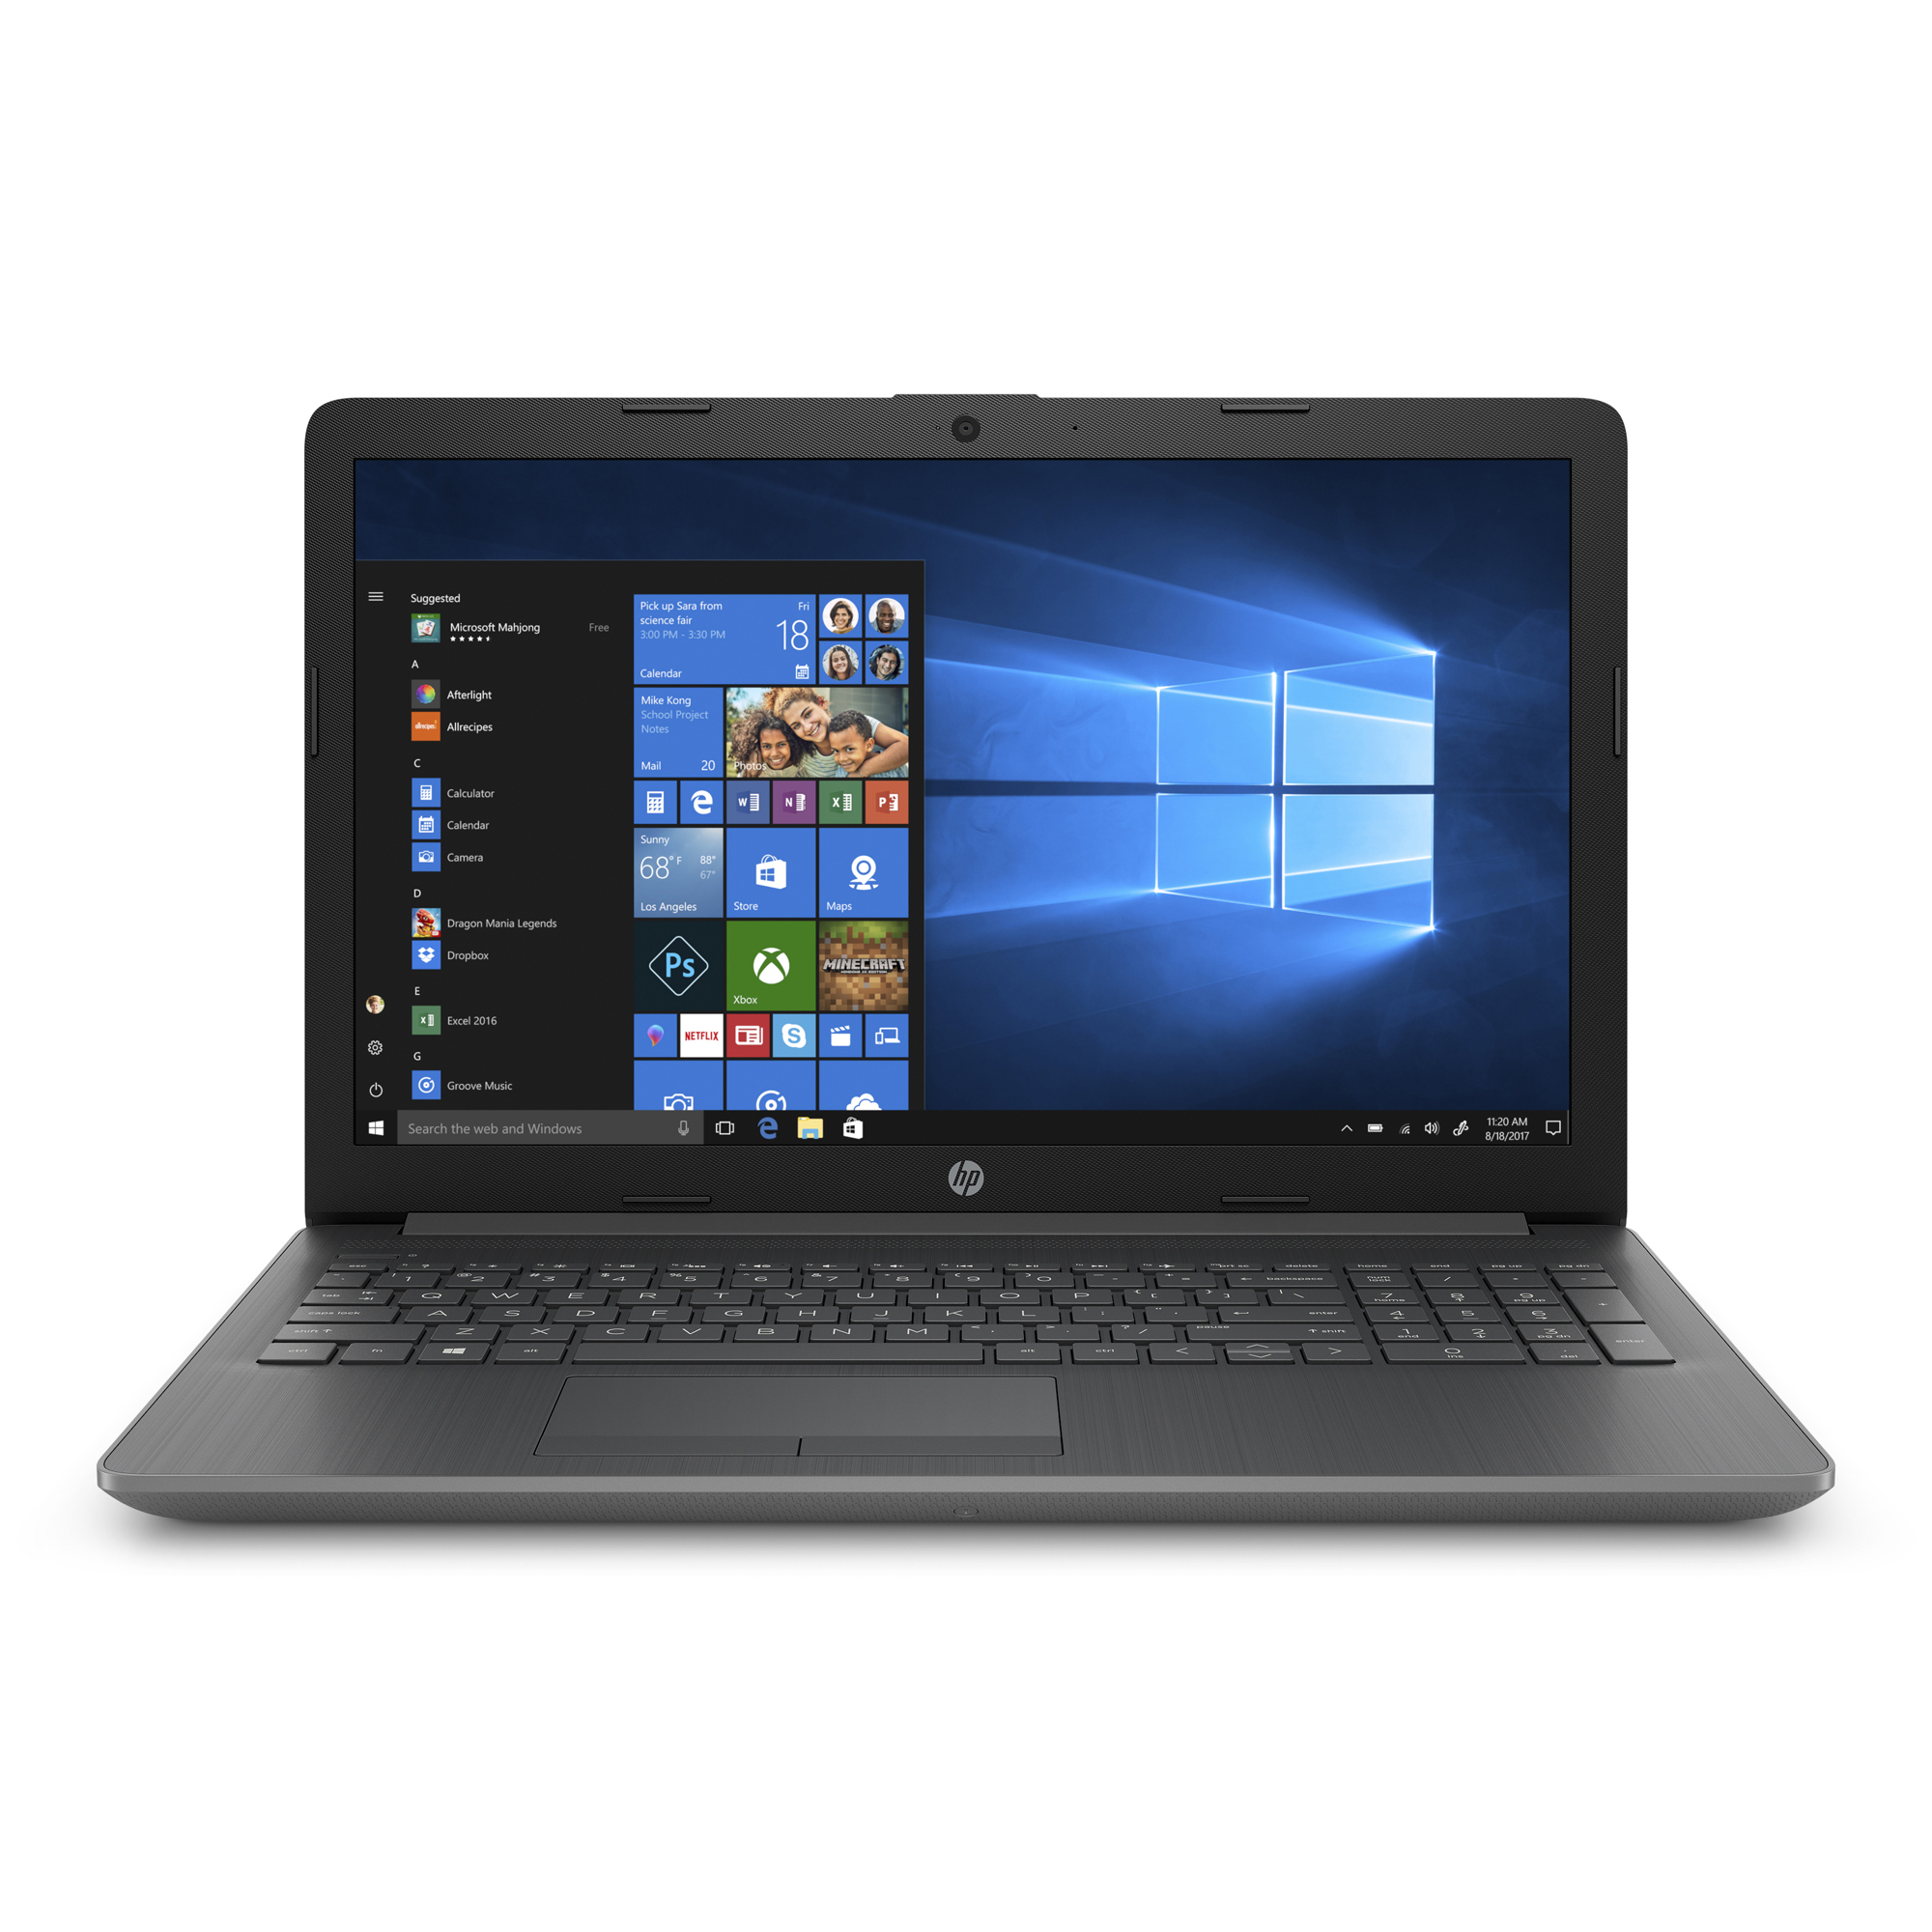 "HP 15-DB1030NR Laptop, 15.6"", AMD Ryzen 3 3200U, AMD Radeon Vega 3 Graphics, 128 GB SSD, 8GB Memory, 5TW23UA#ABA"